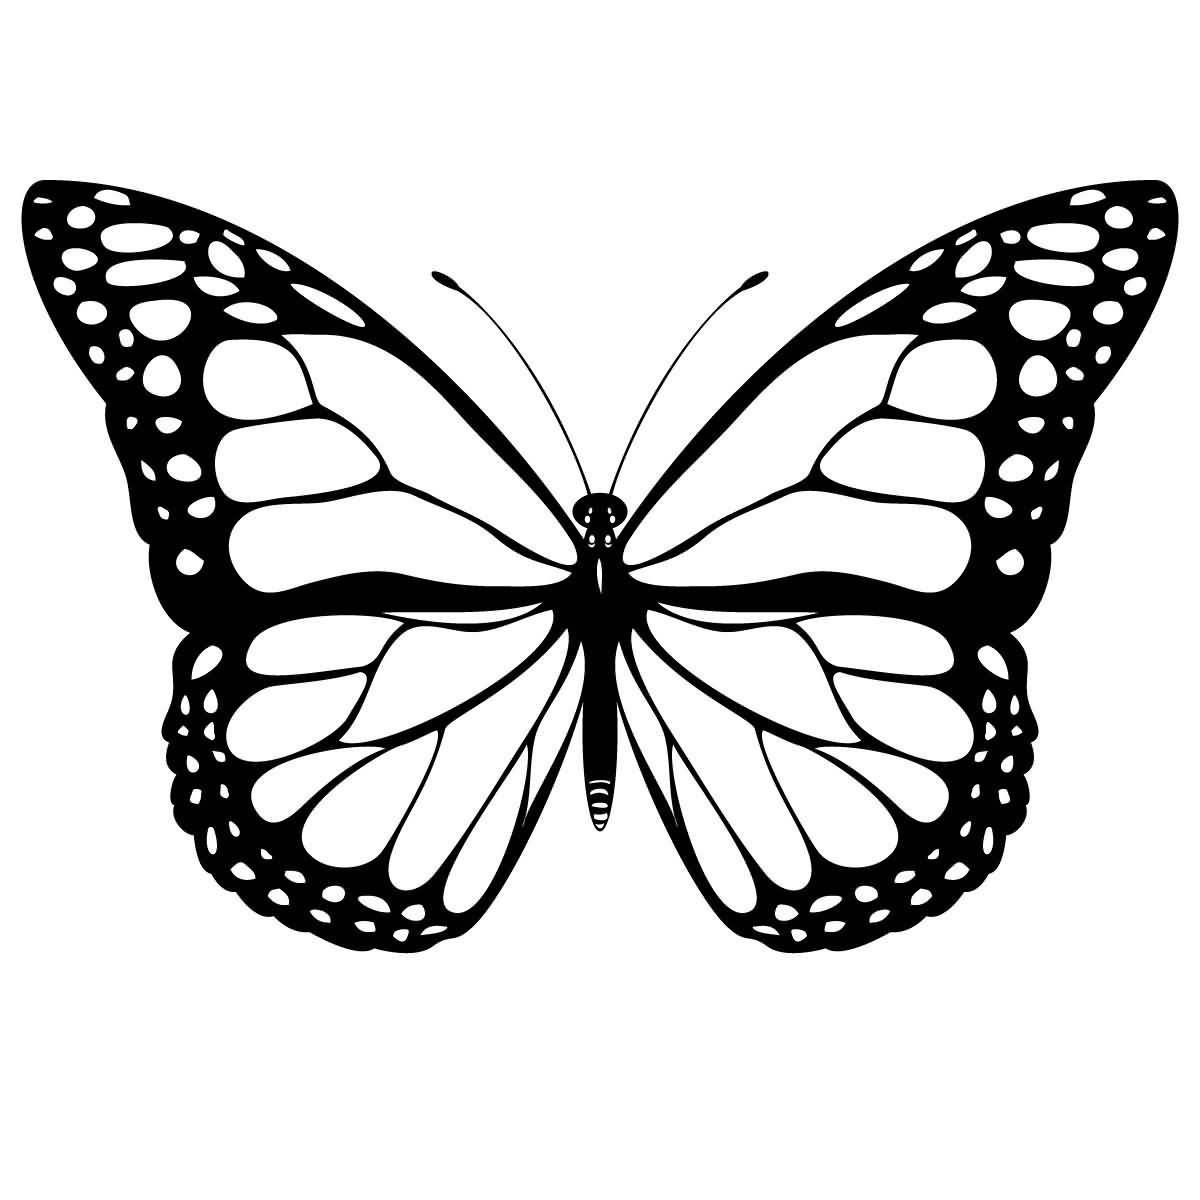 Stencil Design On Paper Flying Monarch Butterfly Tattoo Design